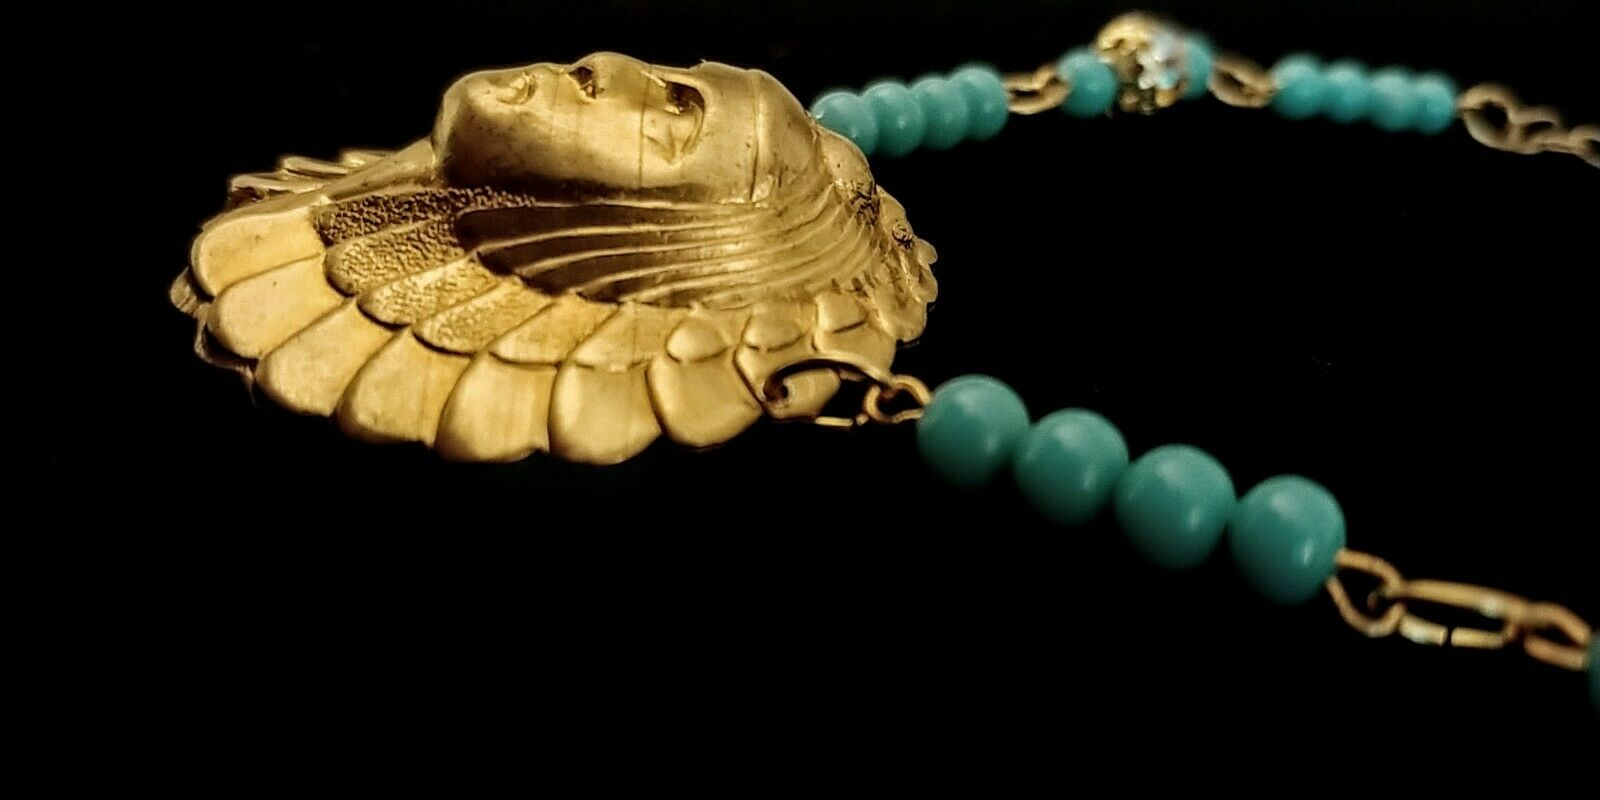 Vintage Egyptian Revival Necklace - image 9